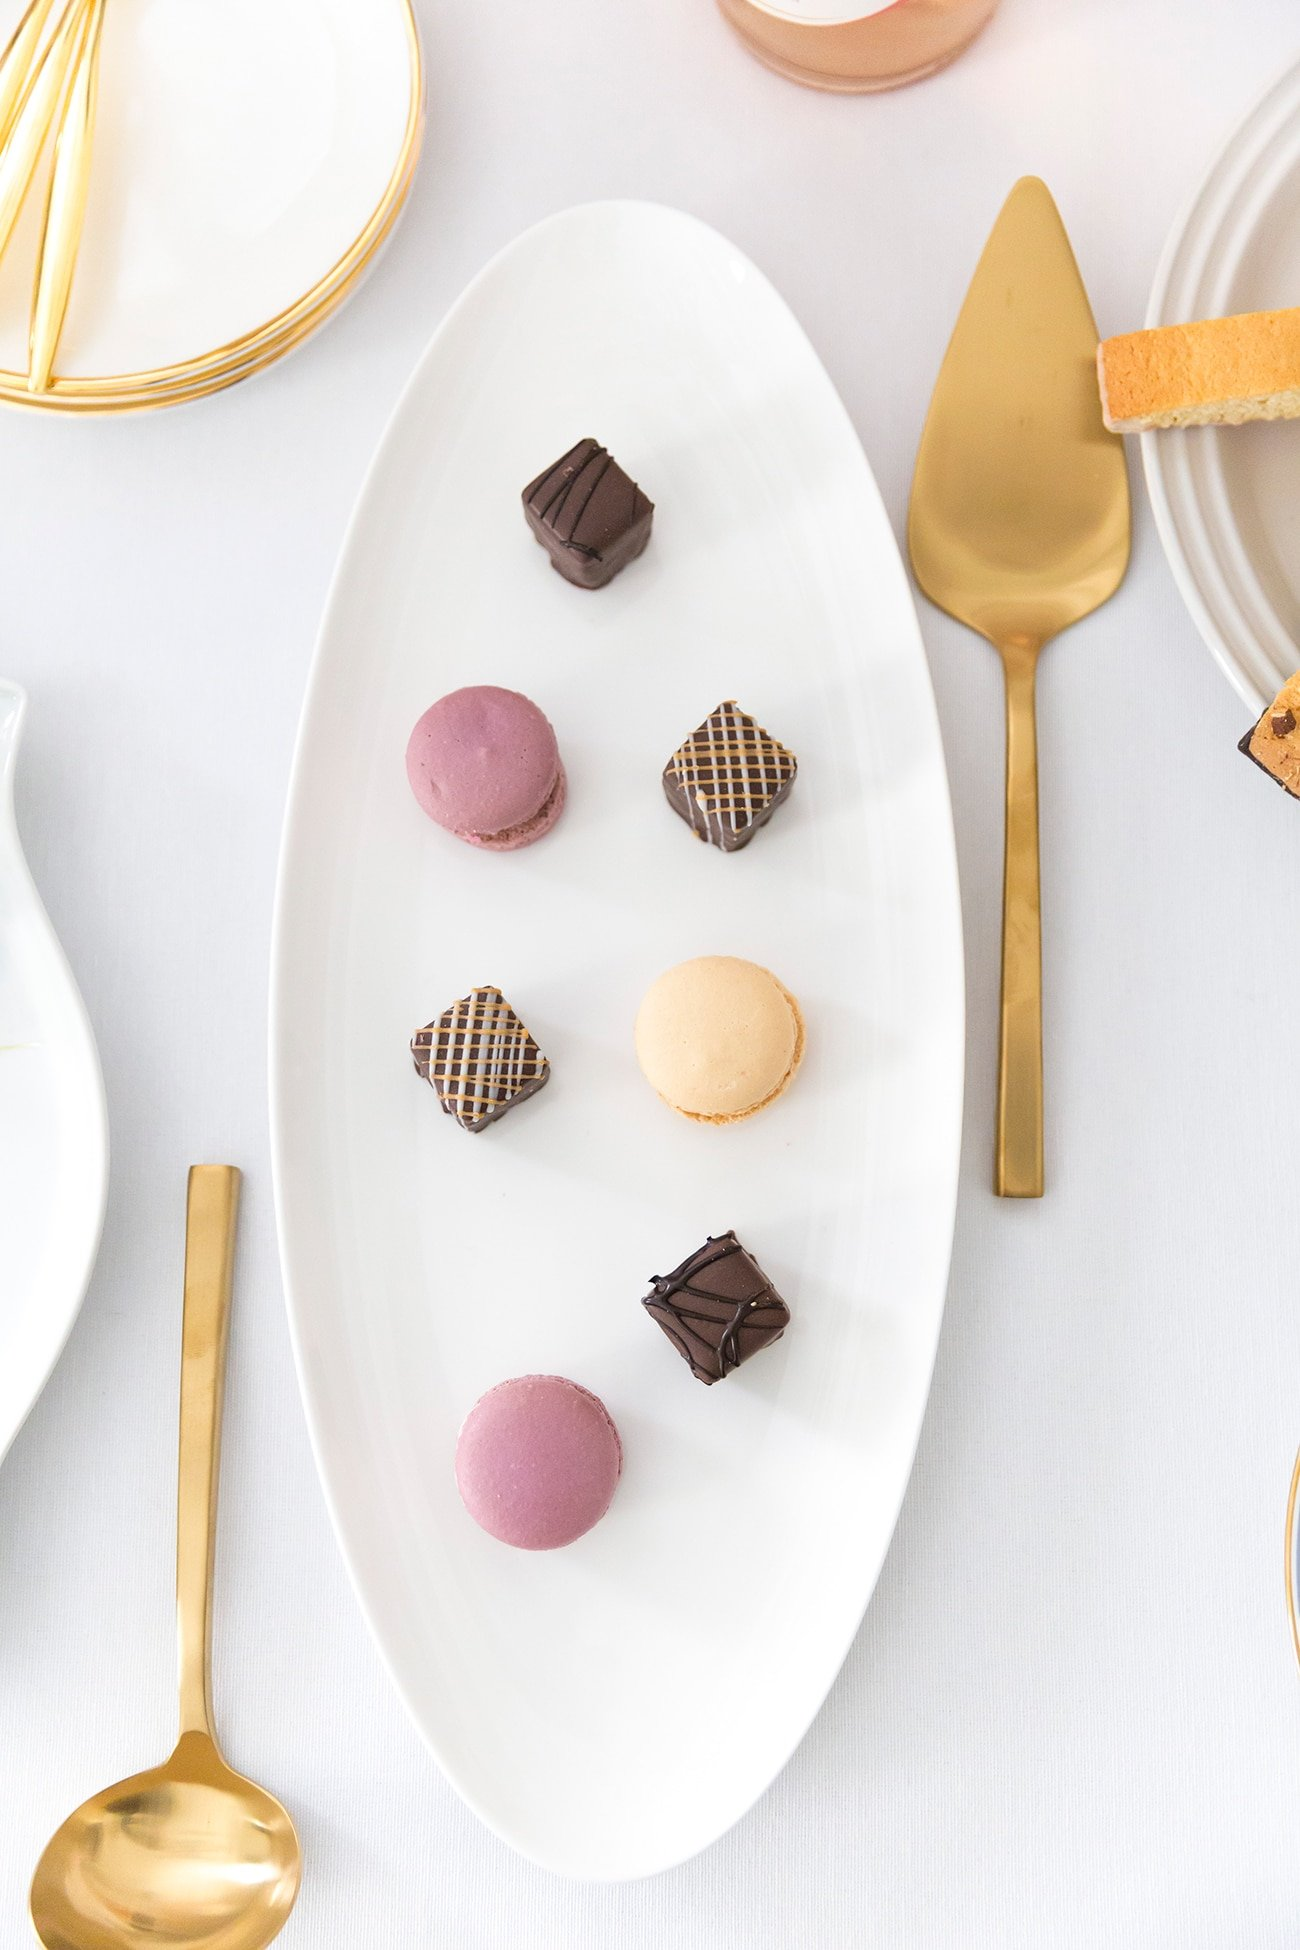 Gorgeous serveware for everyday and fancy occasions!